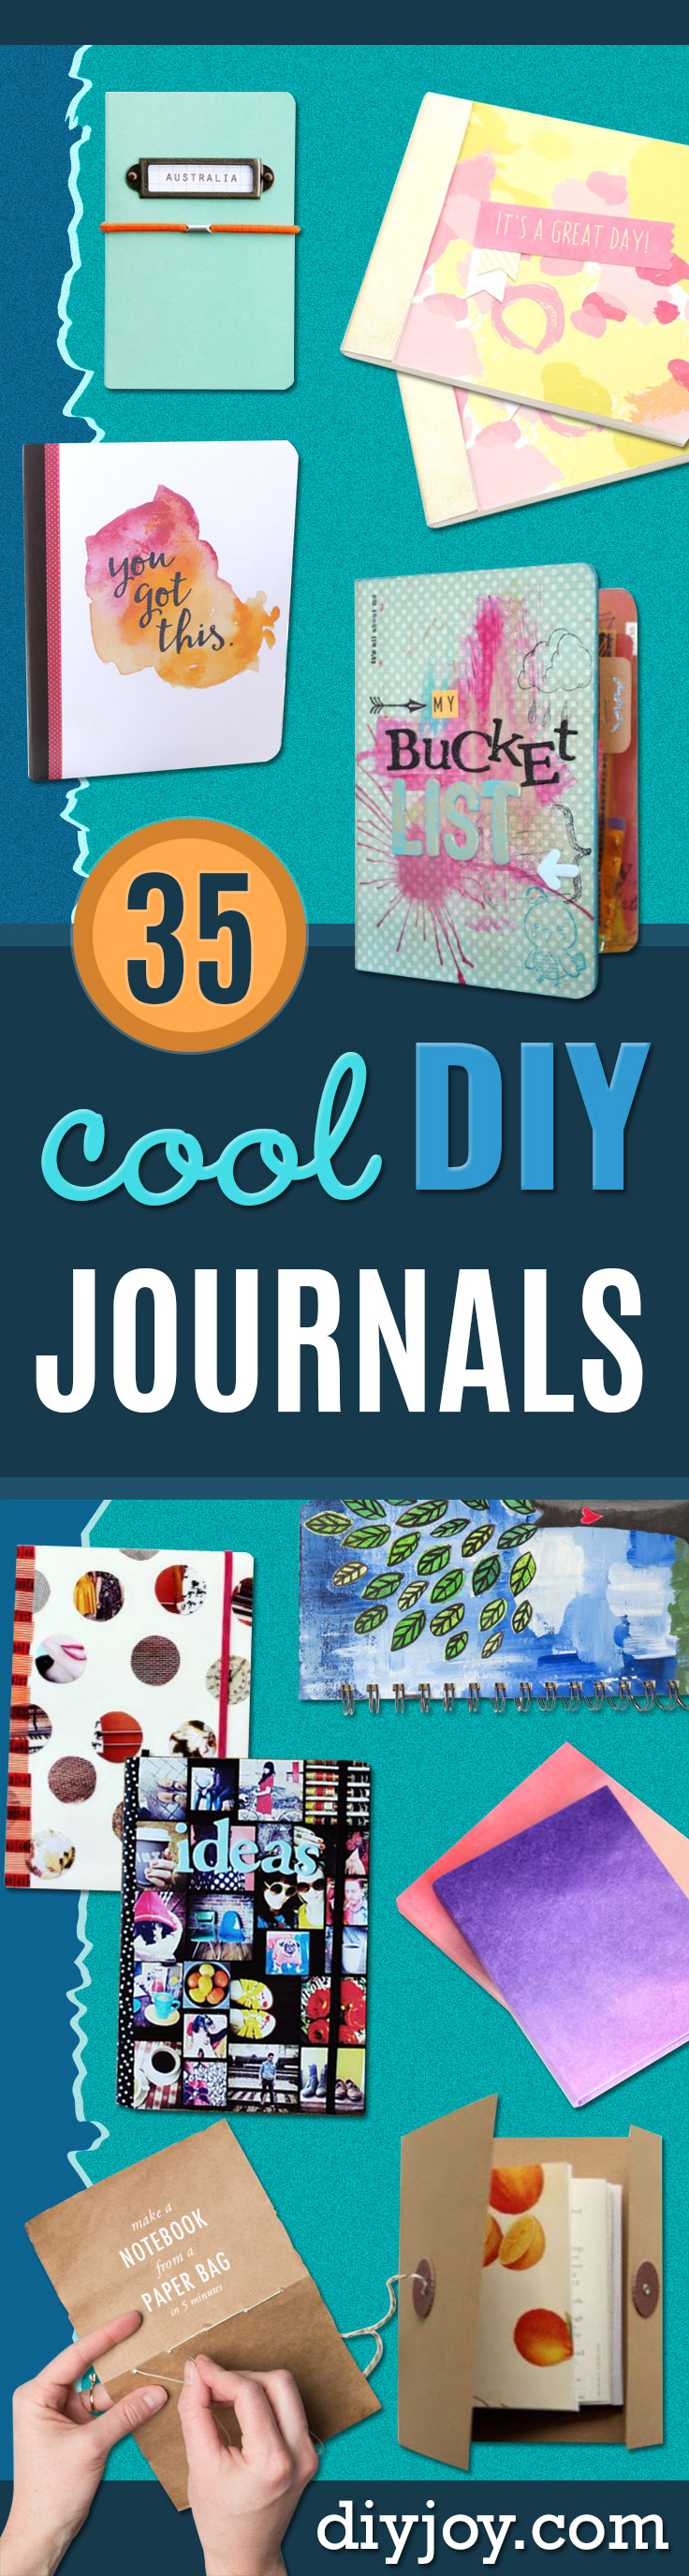 DIY Journals - Ideas For Making A Handmade Journal - Cover Art Tutorial, Binding Tips, Easy Craft Ideas for Kids and For Teens - Step By Step Instructions for Making From Scratch, From An Old Book - Leather, Faux Marble, Paper, Monogram, Cute Do It Yourself Gift Idea